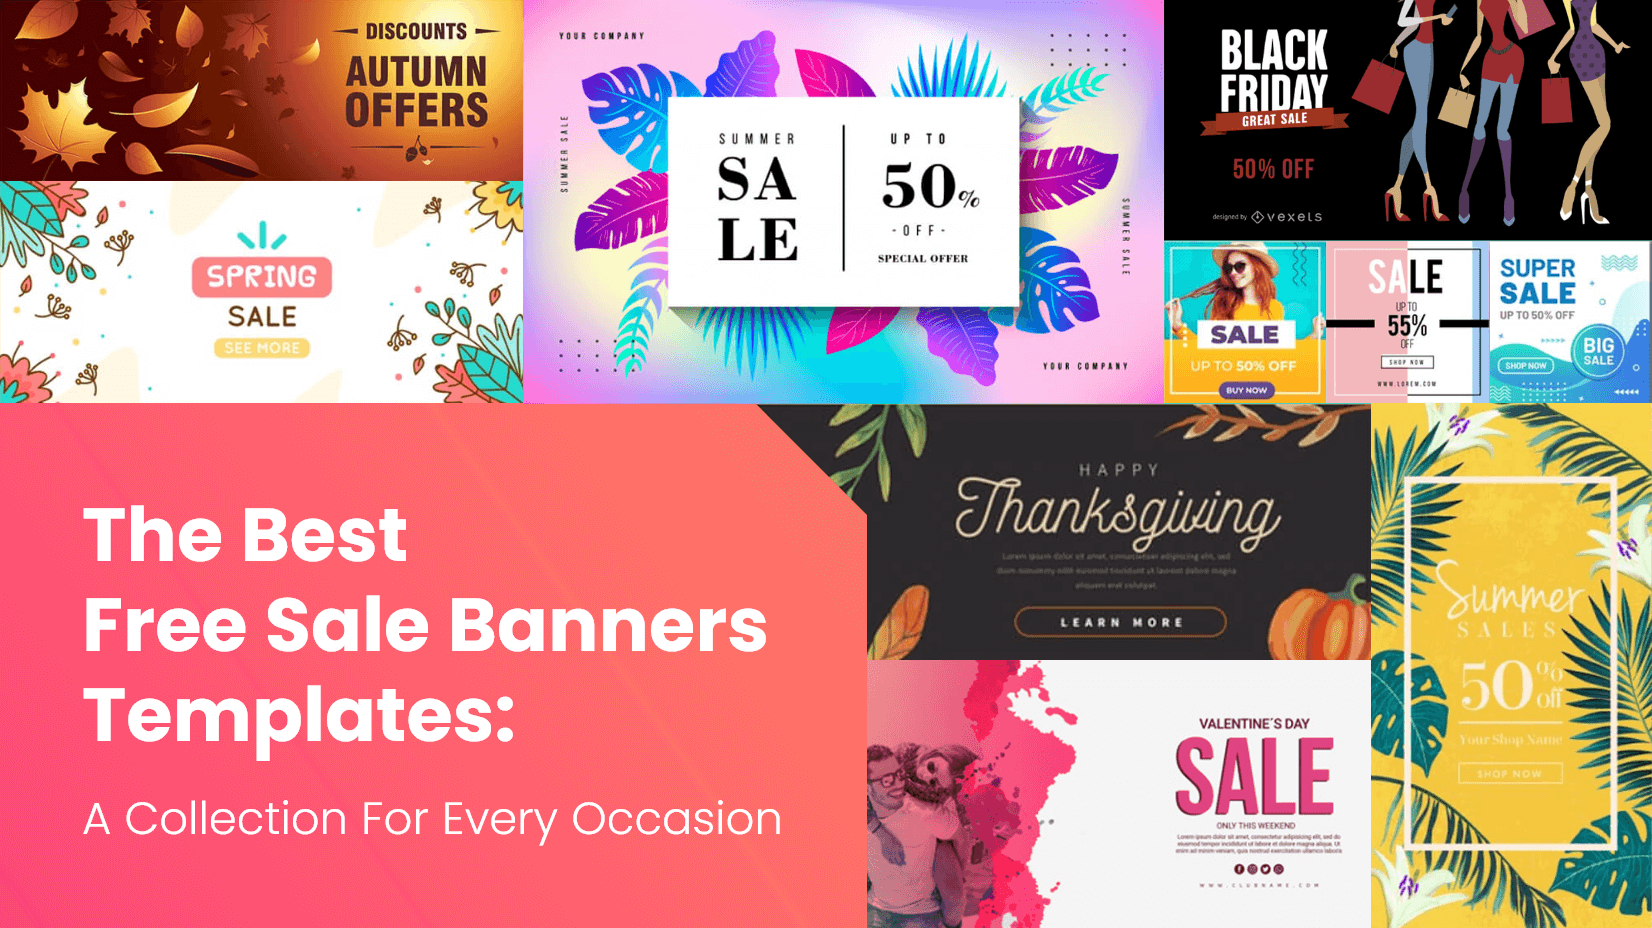 The Best Free Sale Banners Templates A Collection For Every